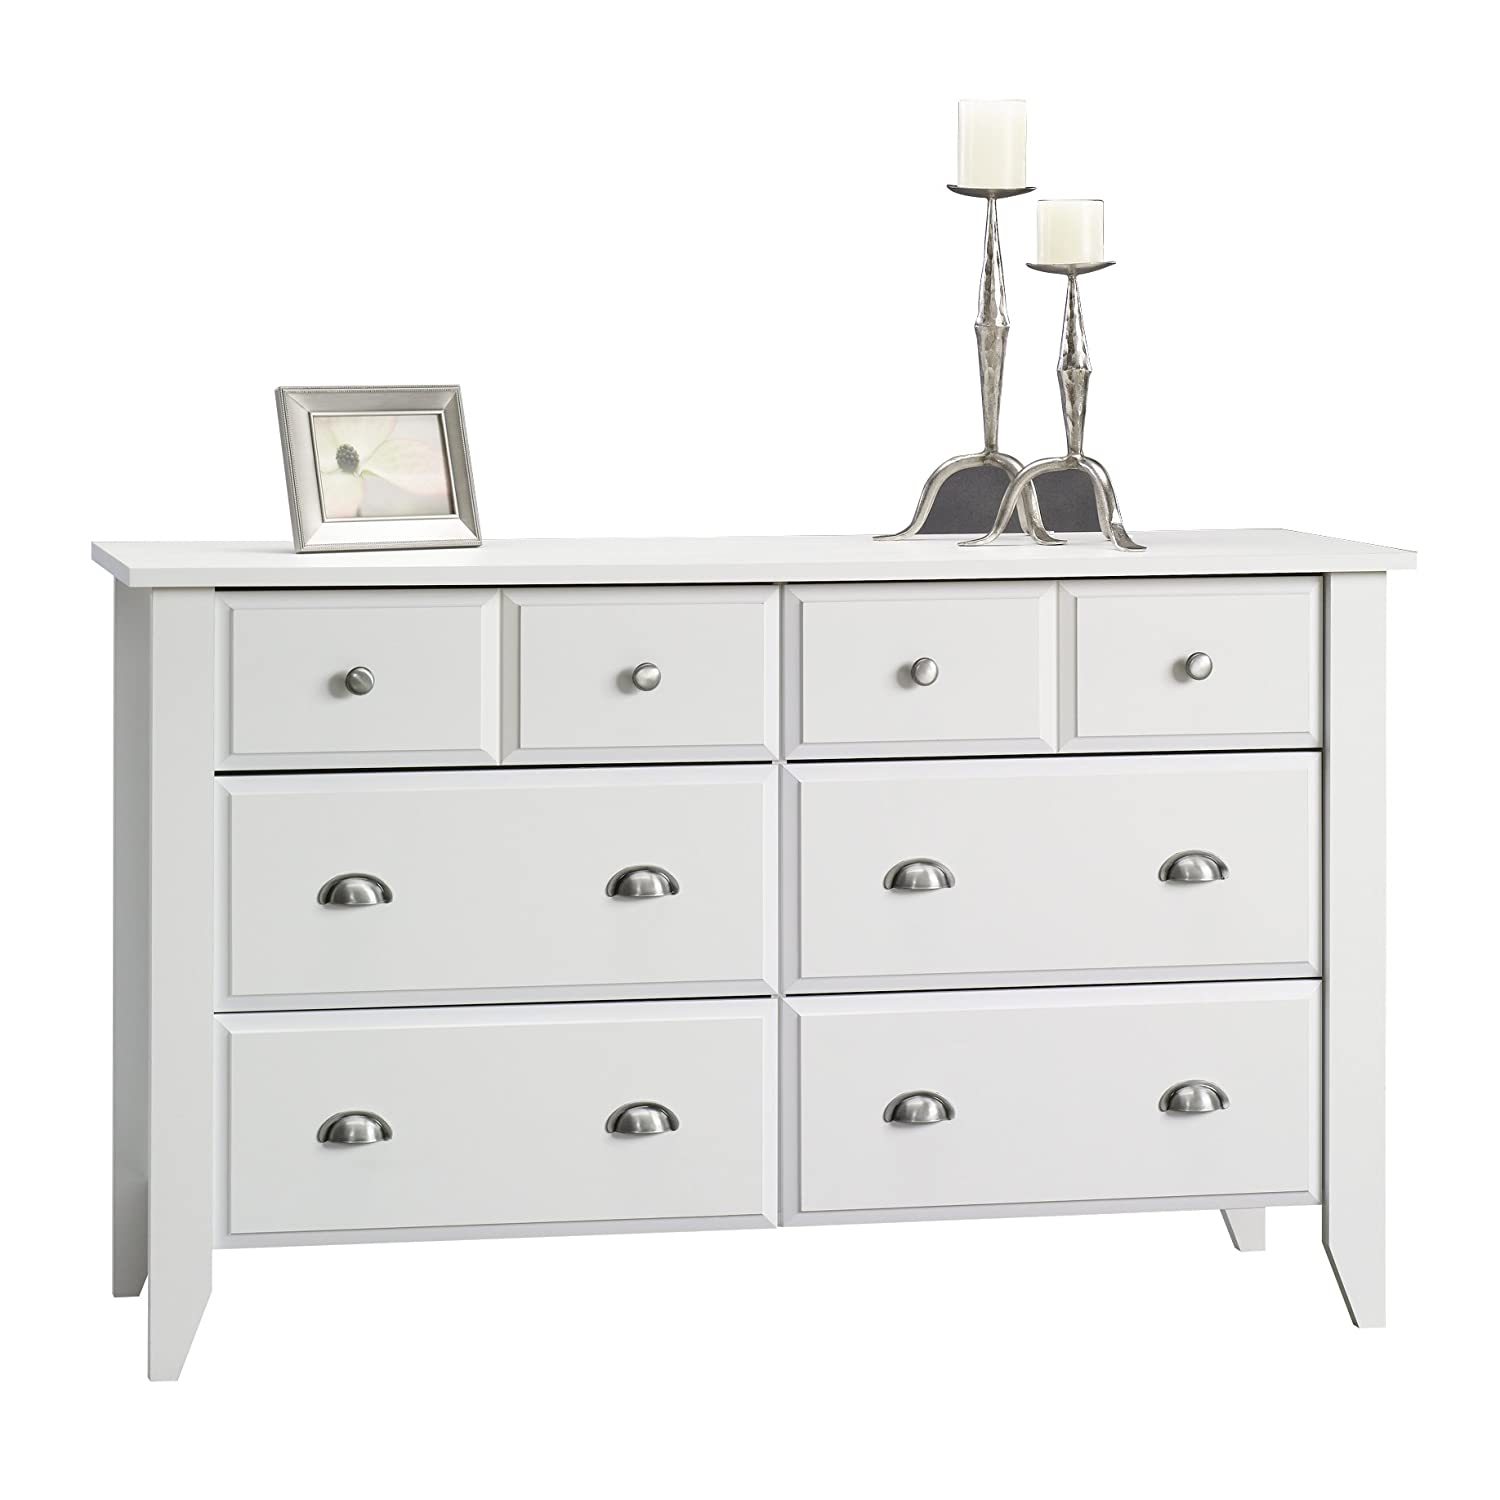 white dresser drawers low amazoncom sauder shoal creek dresser soft white finish kitchen dining